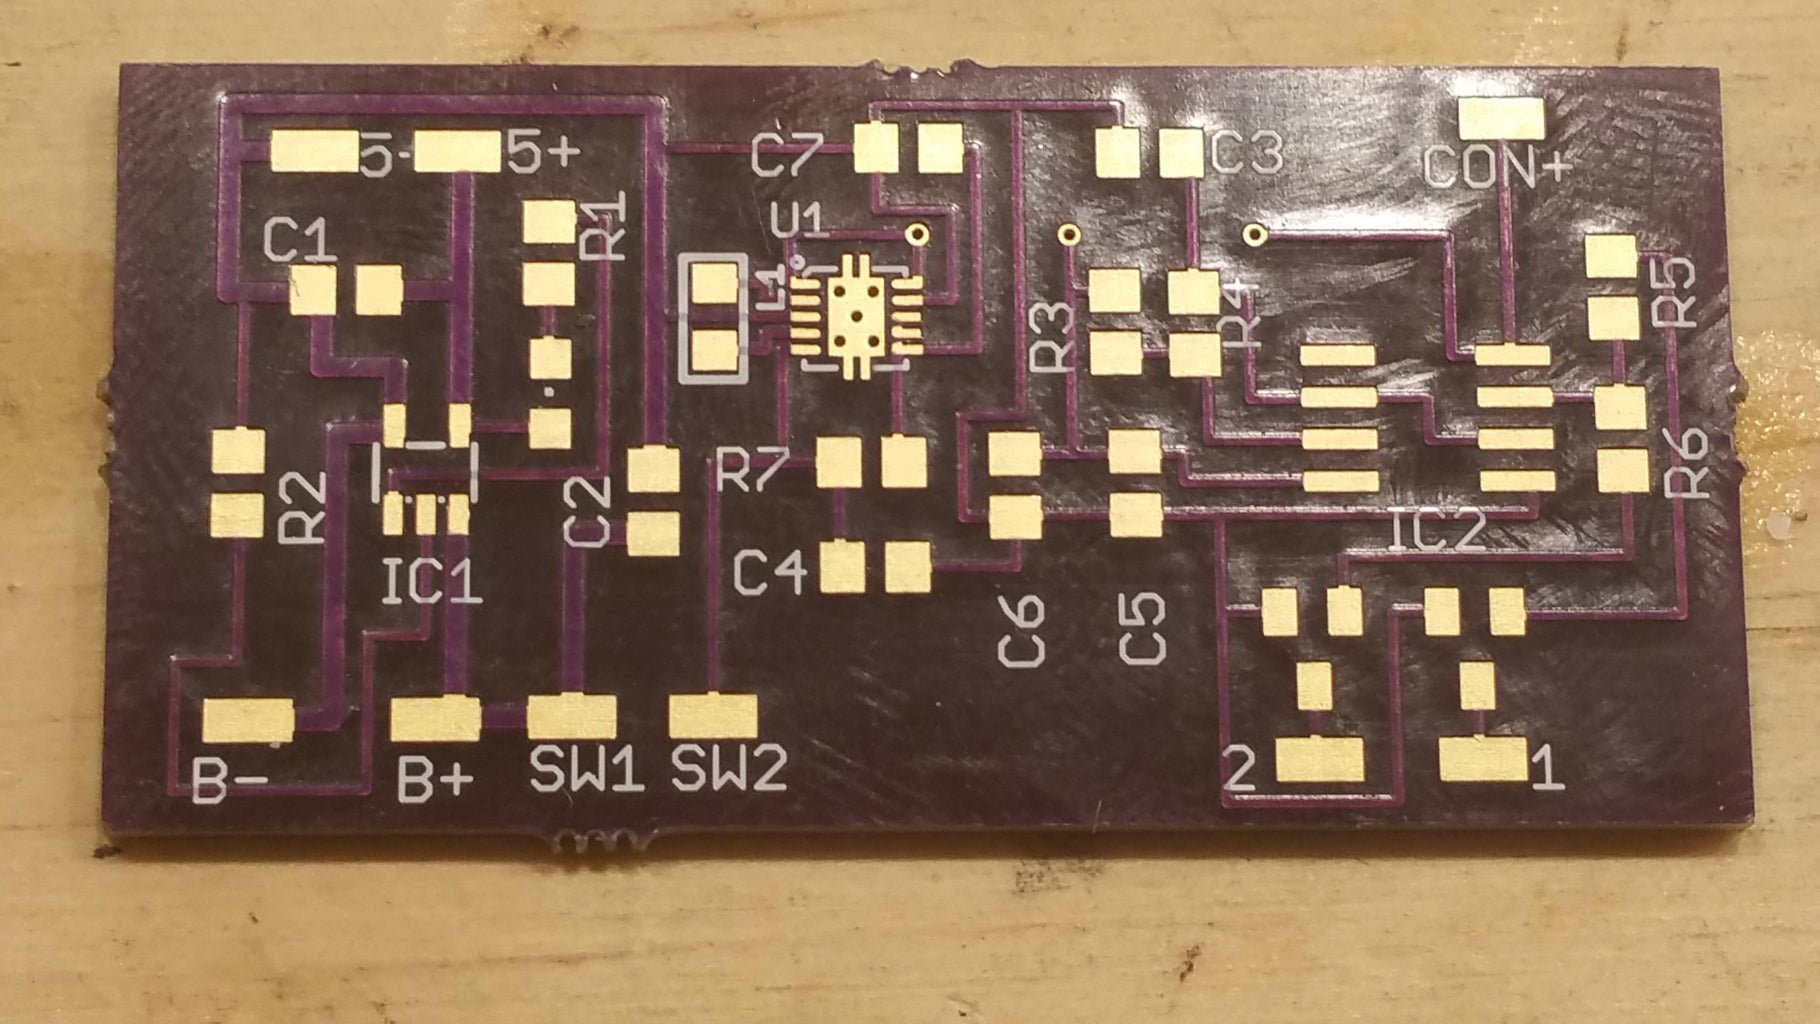 The Schematic, Board, Findings and Future Plans